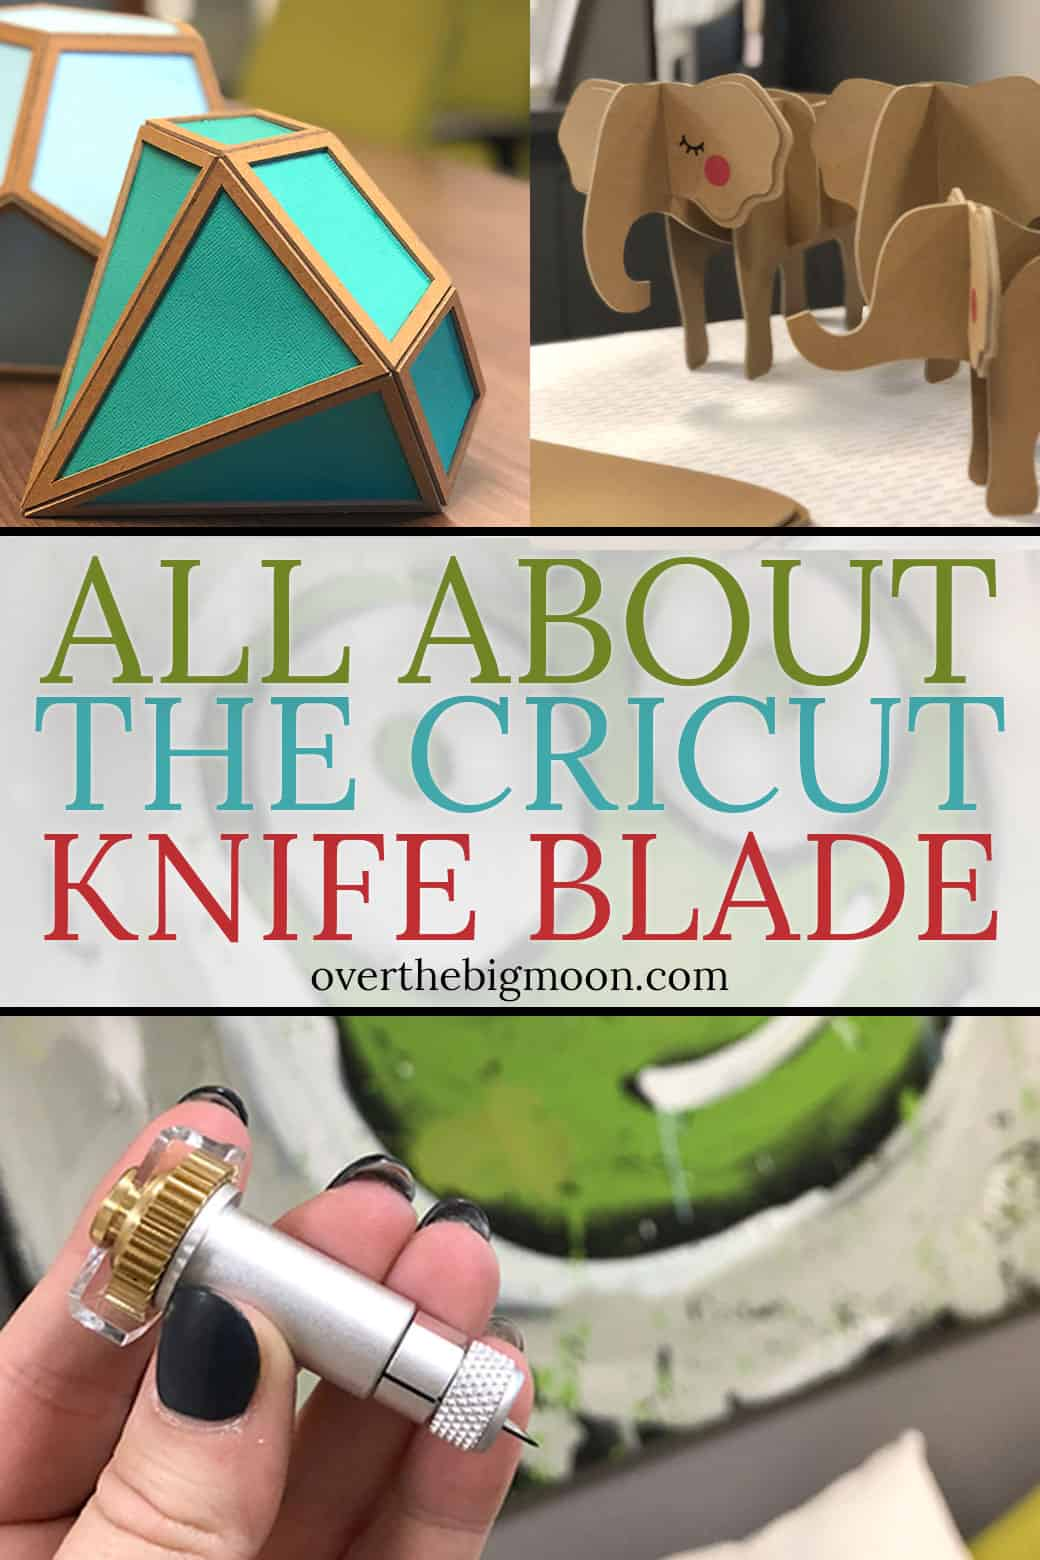 Everything that you need to know about the Cricut Knife Blade! What can it cut? How thick of a material can it cut? How much does it cost? Come learn everything you need to know to get started! From overthebigmoon.com!